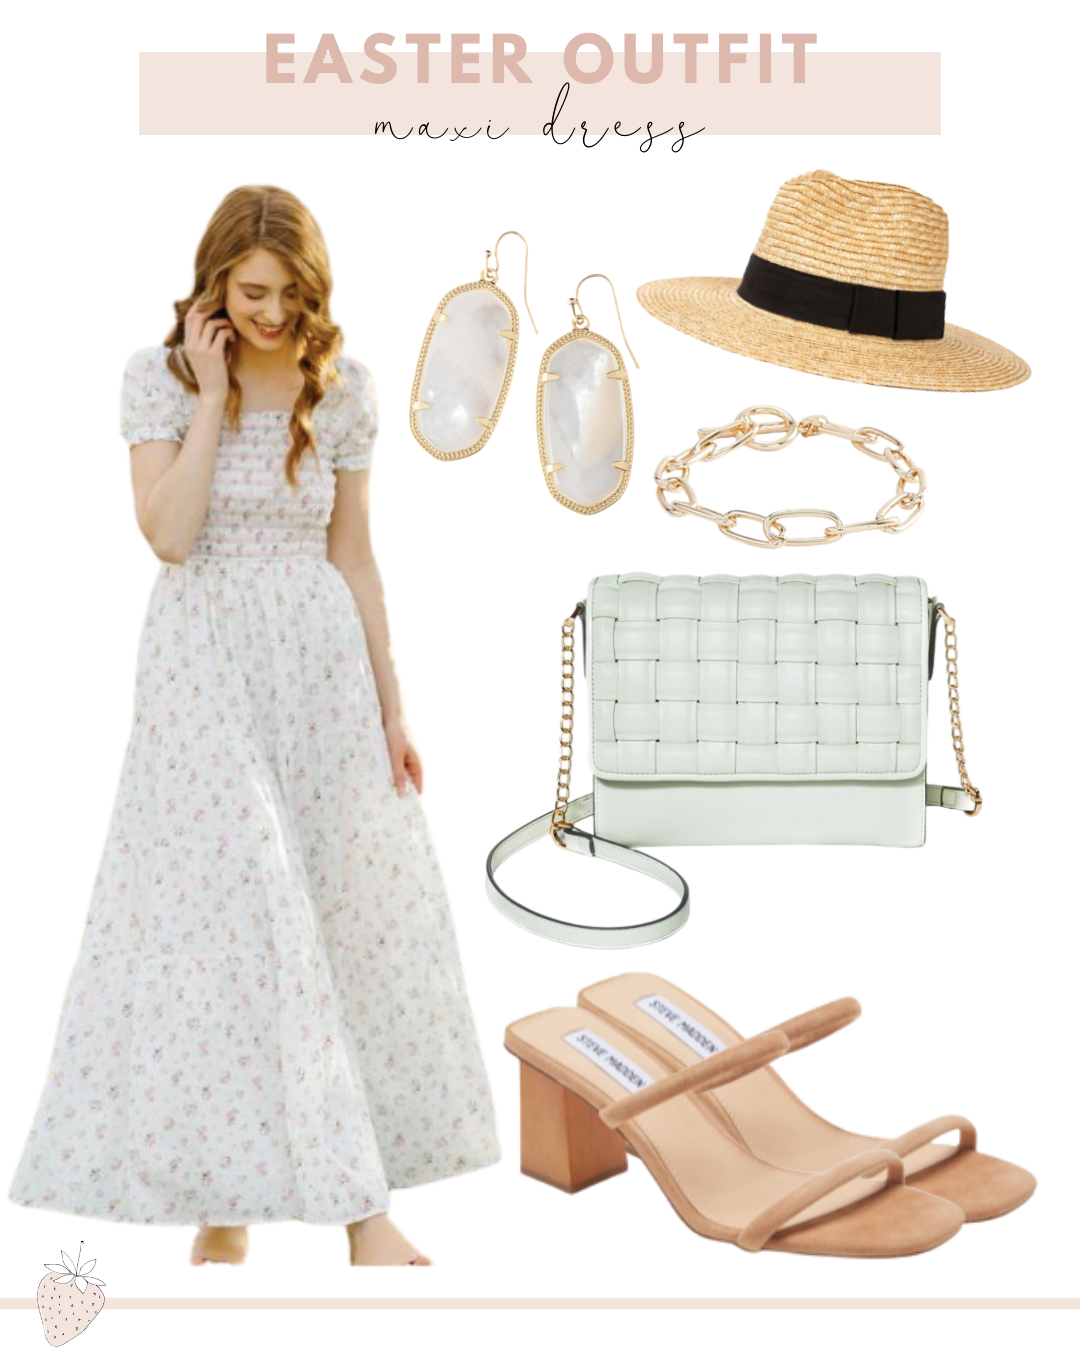 5 Easter Outfit Ideas